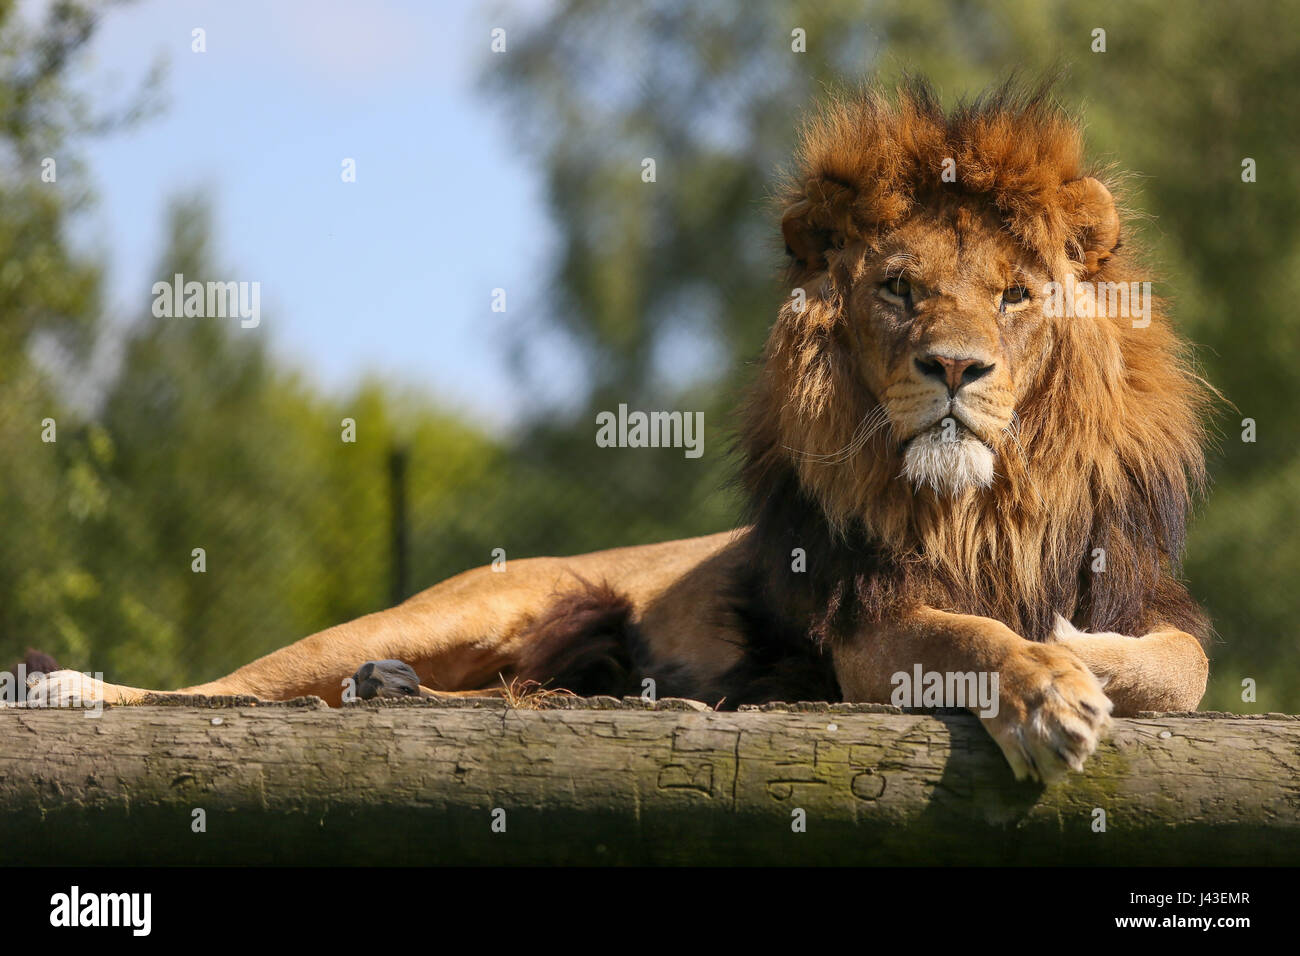 Lion à Knowsley Safari, Prescot, Royaume-Uni Photo Stock